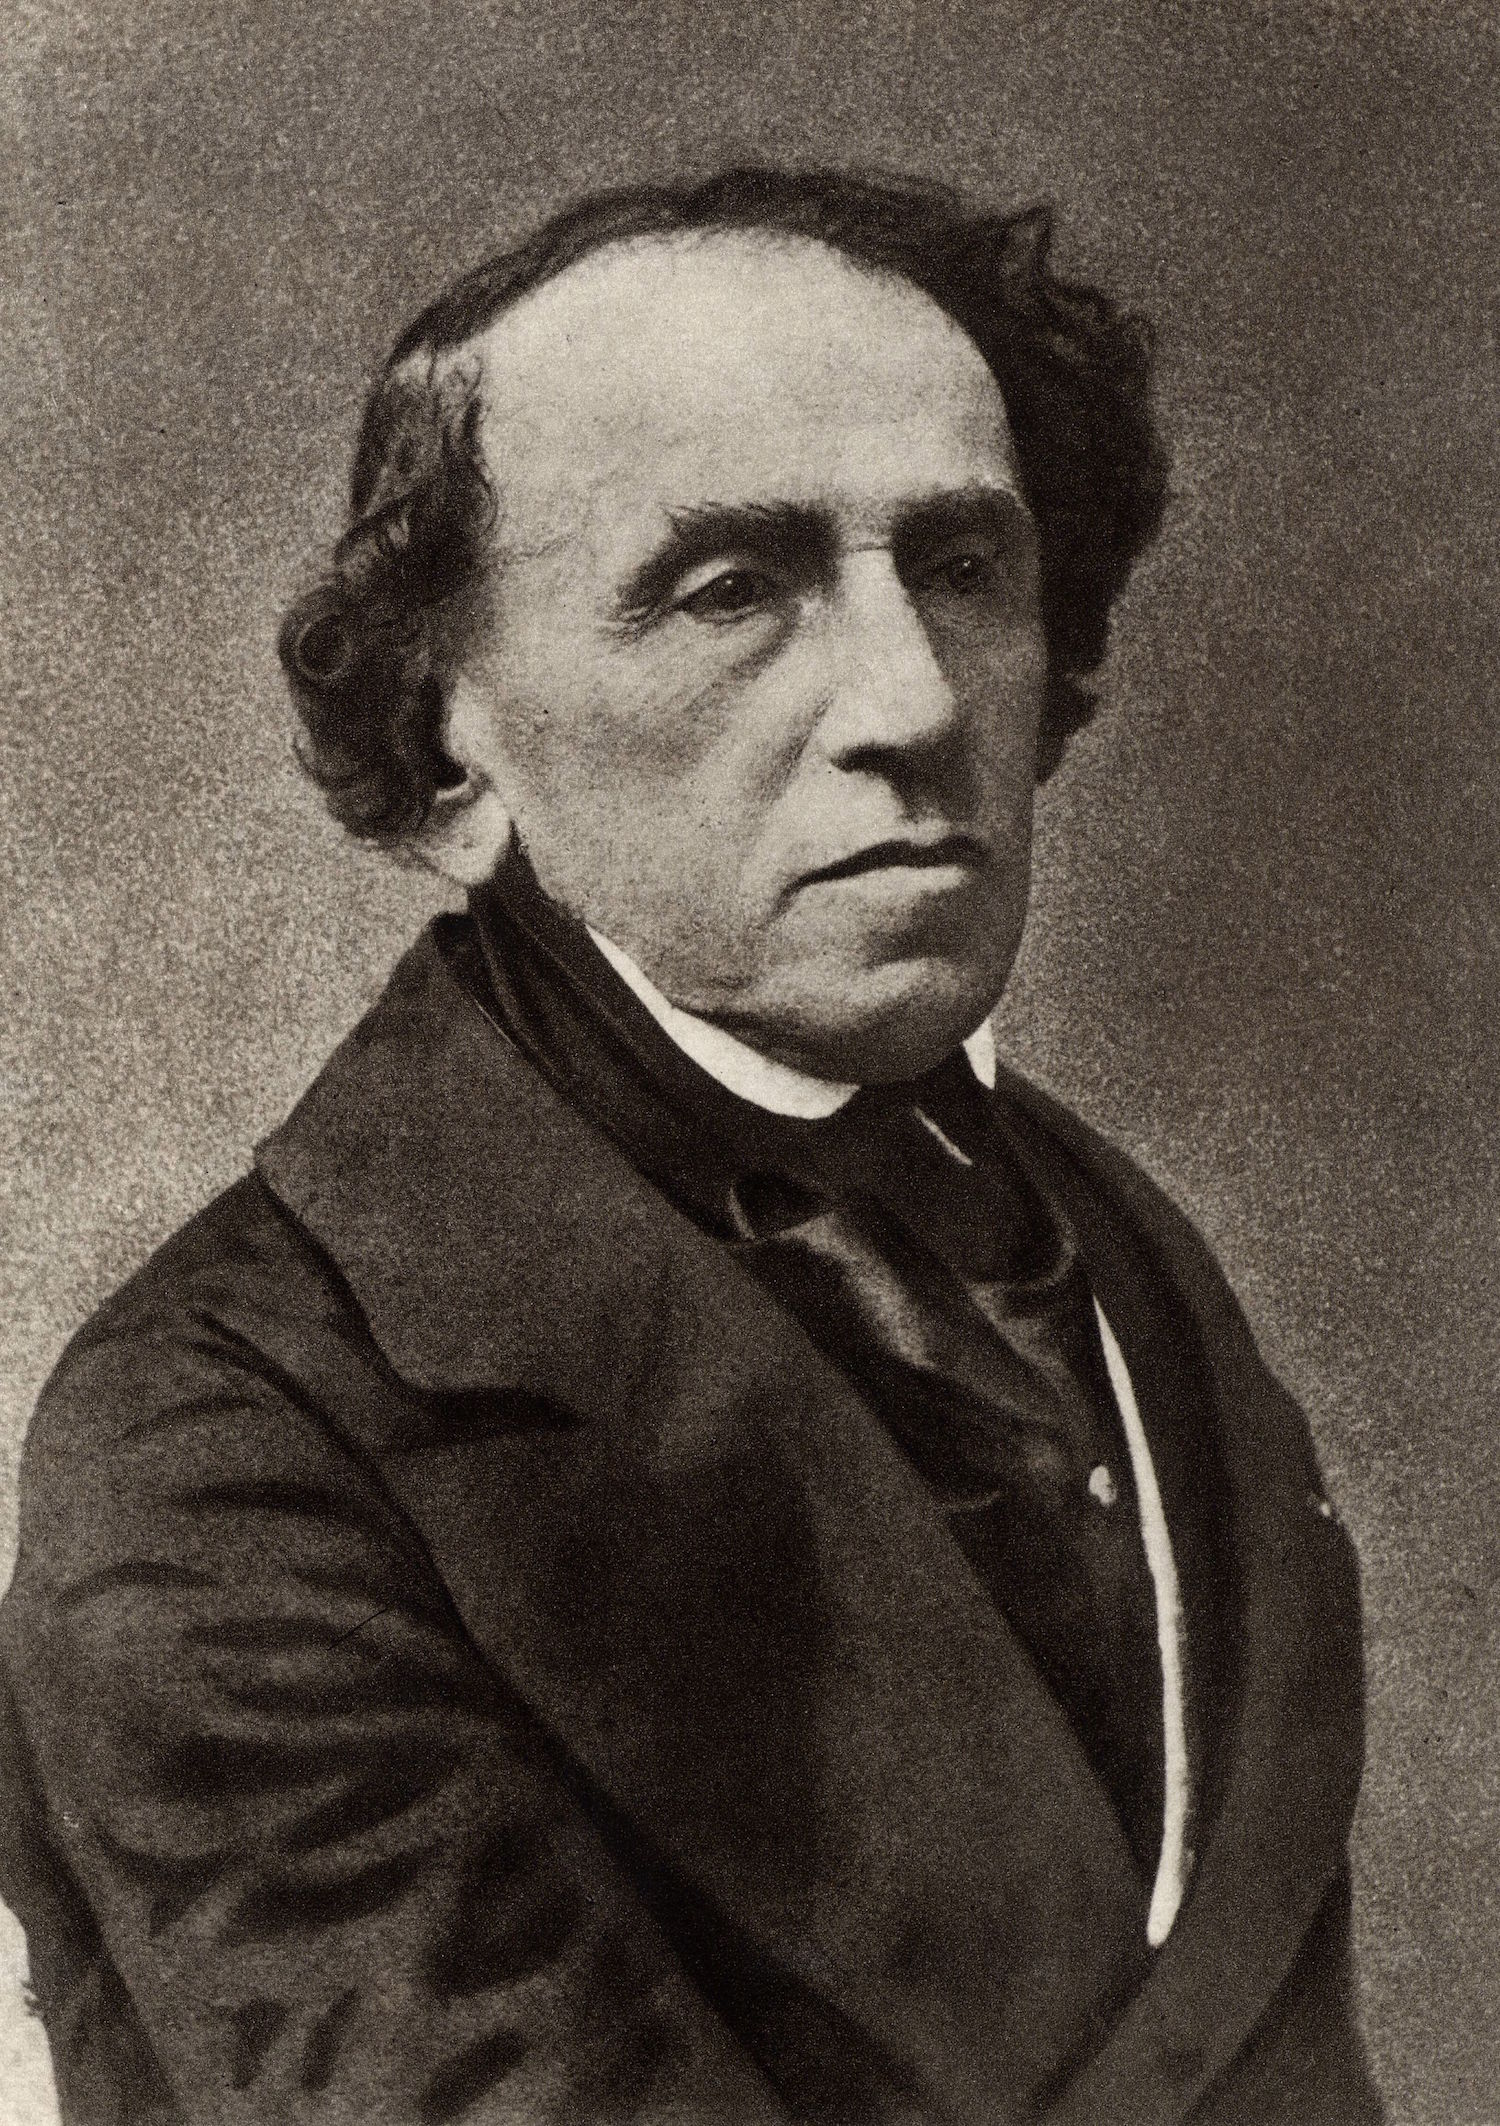 Giacomo Meyerbeer (1791-1864) (Jakob Liebmann Beer) German composer who settled in Paris and established himself as a foremost composer of Frrench grand opera. From a photograph by Nadar, pseudonym of Gaspard-Felix Tournachon (1820-1910). History